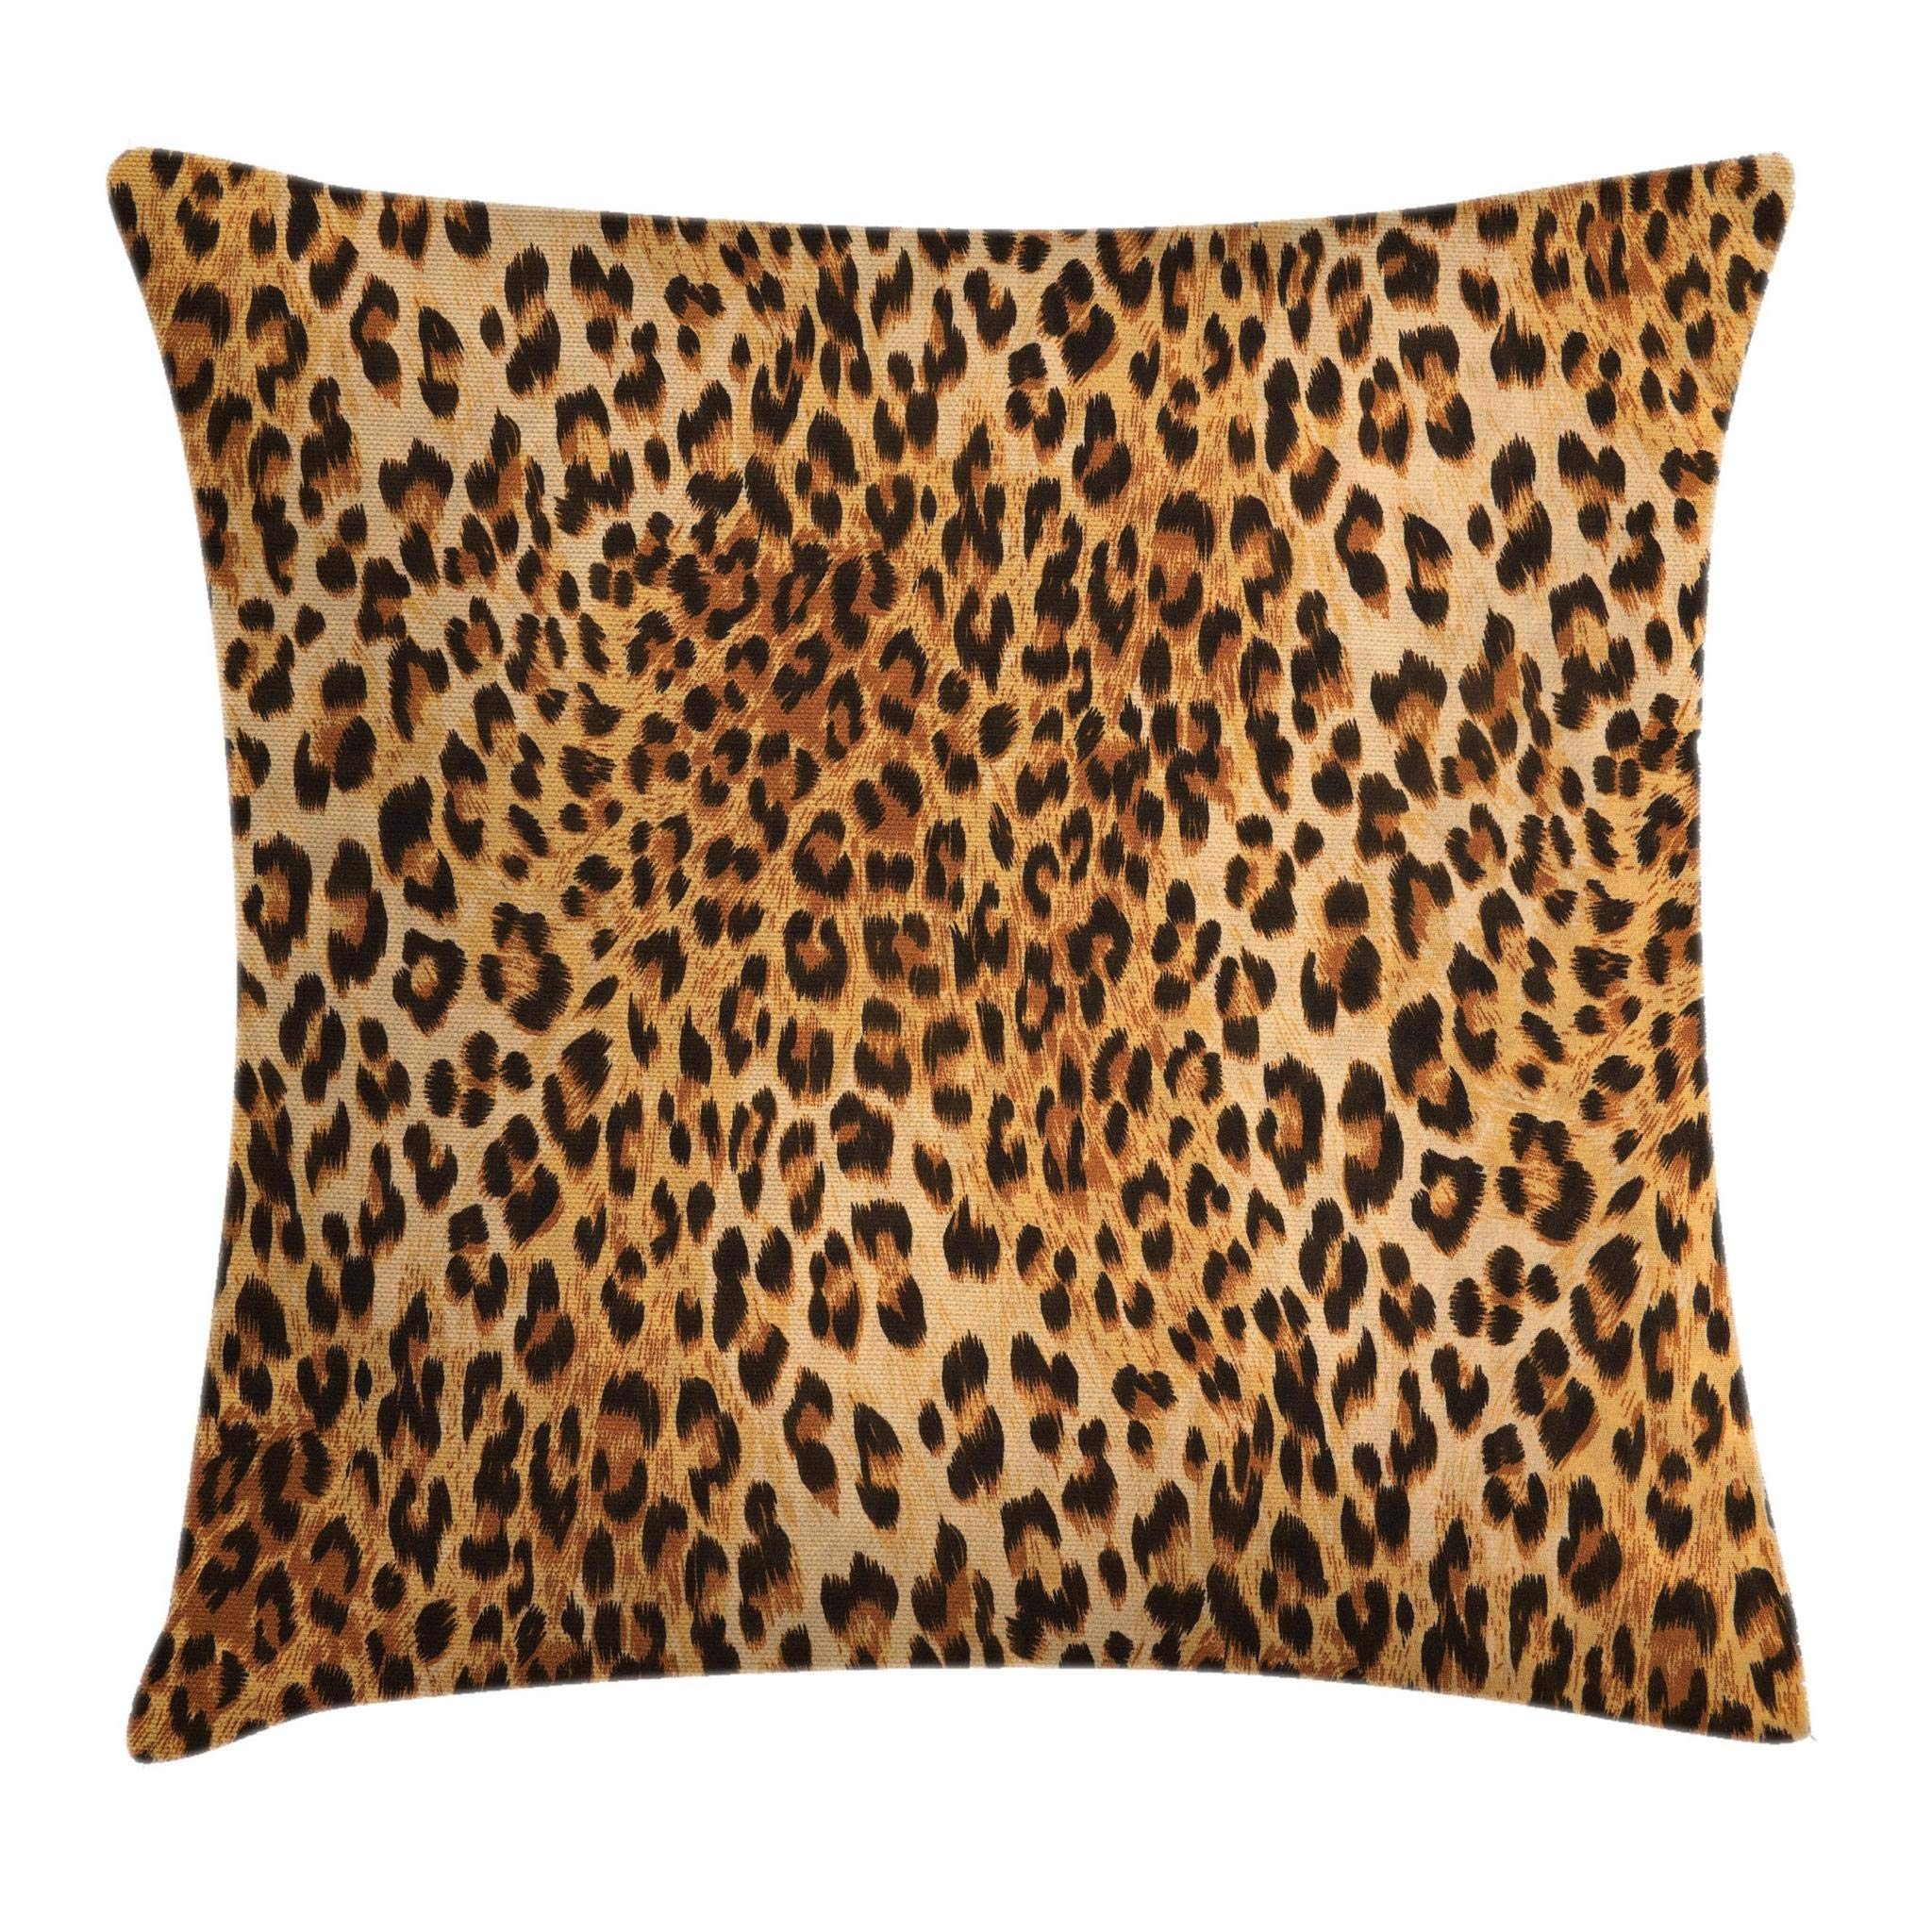 Ambesonne Animal Print Throw Pillow Cushion Cover, Wild Animal Leopard Skin Pattern Wildlife Nature Inspired Modern Illustration, Decorative Square Accent Pillow Case, 20 X 20 Inches, Sand Brown